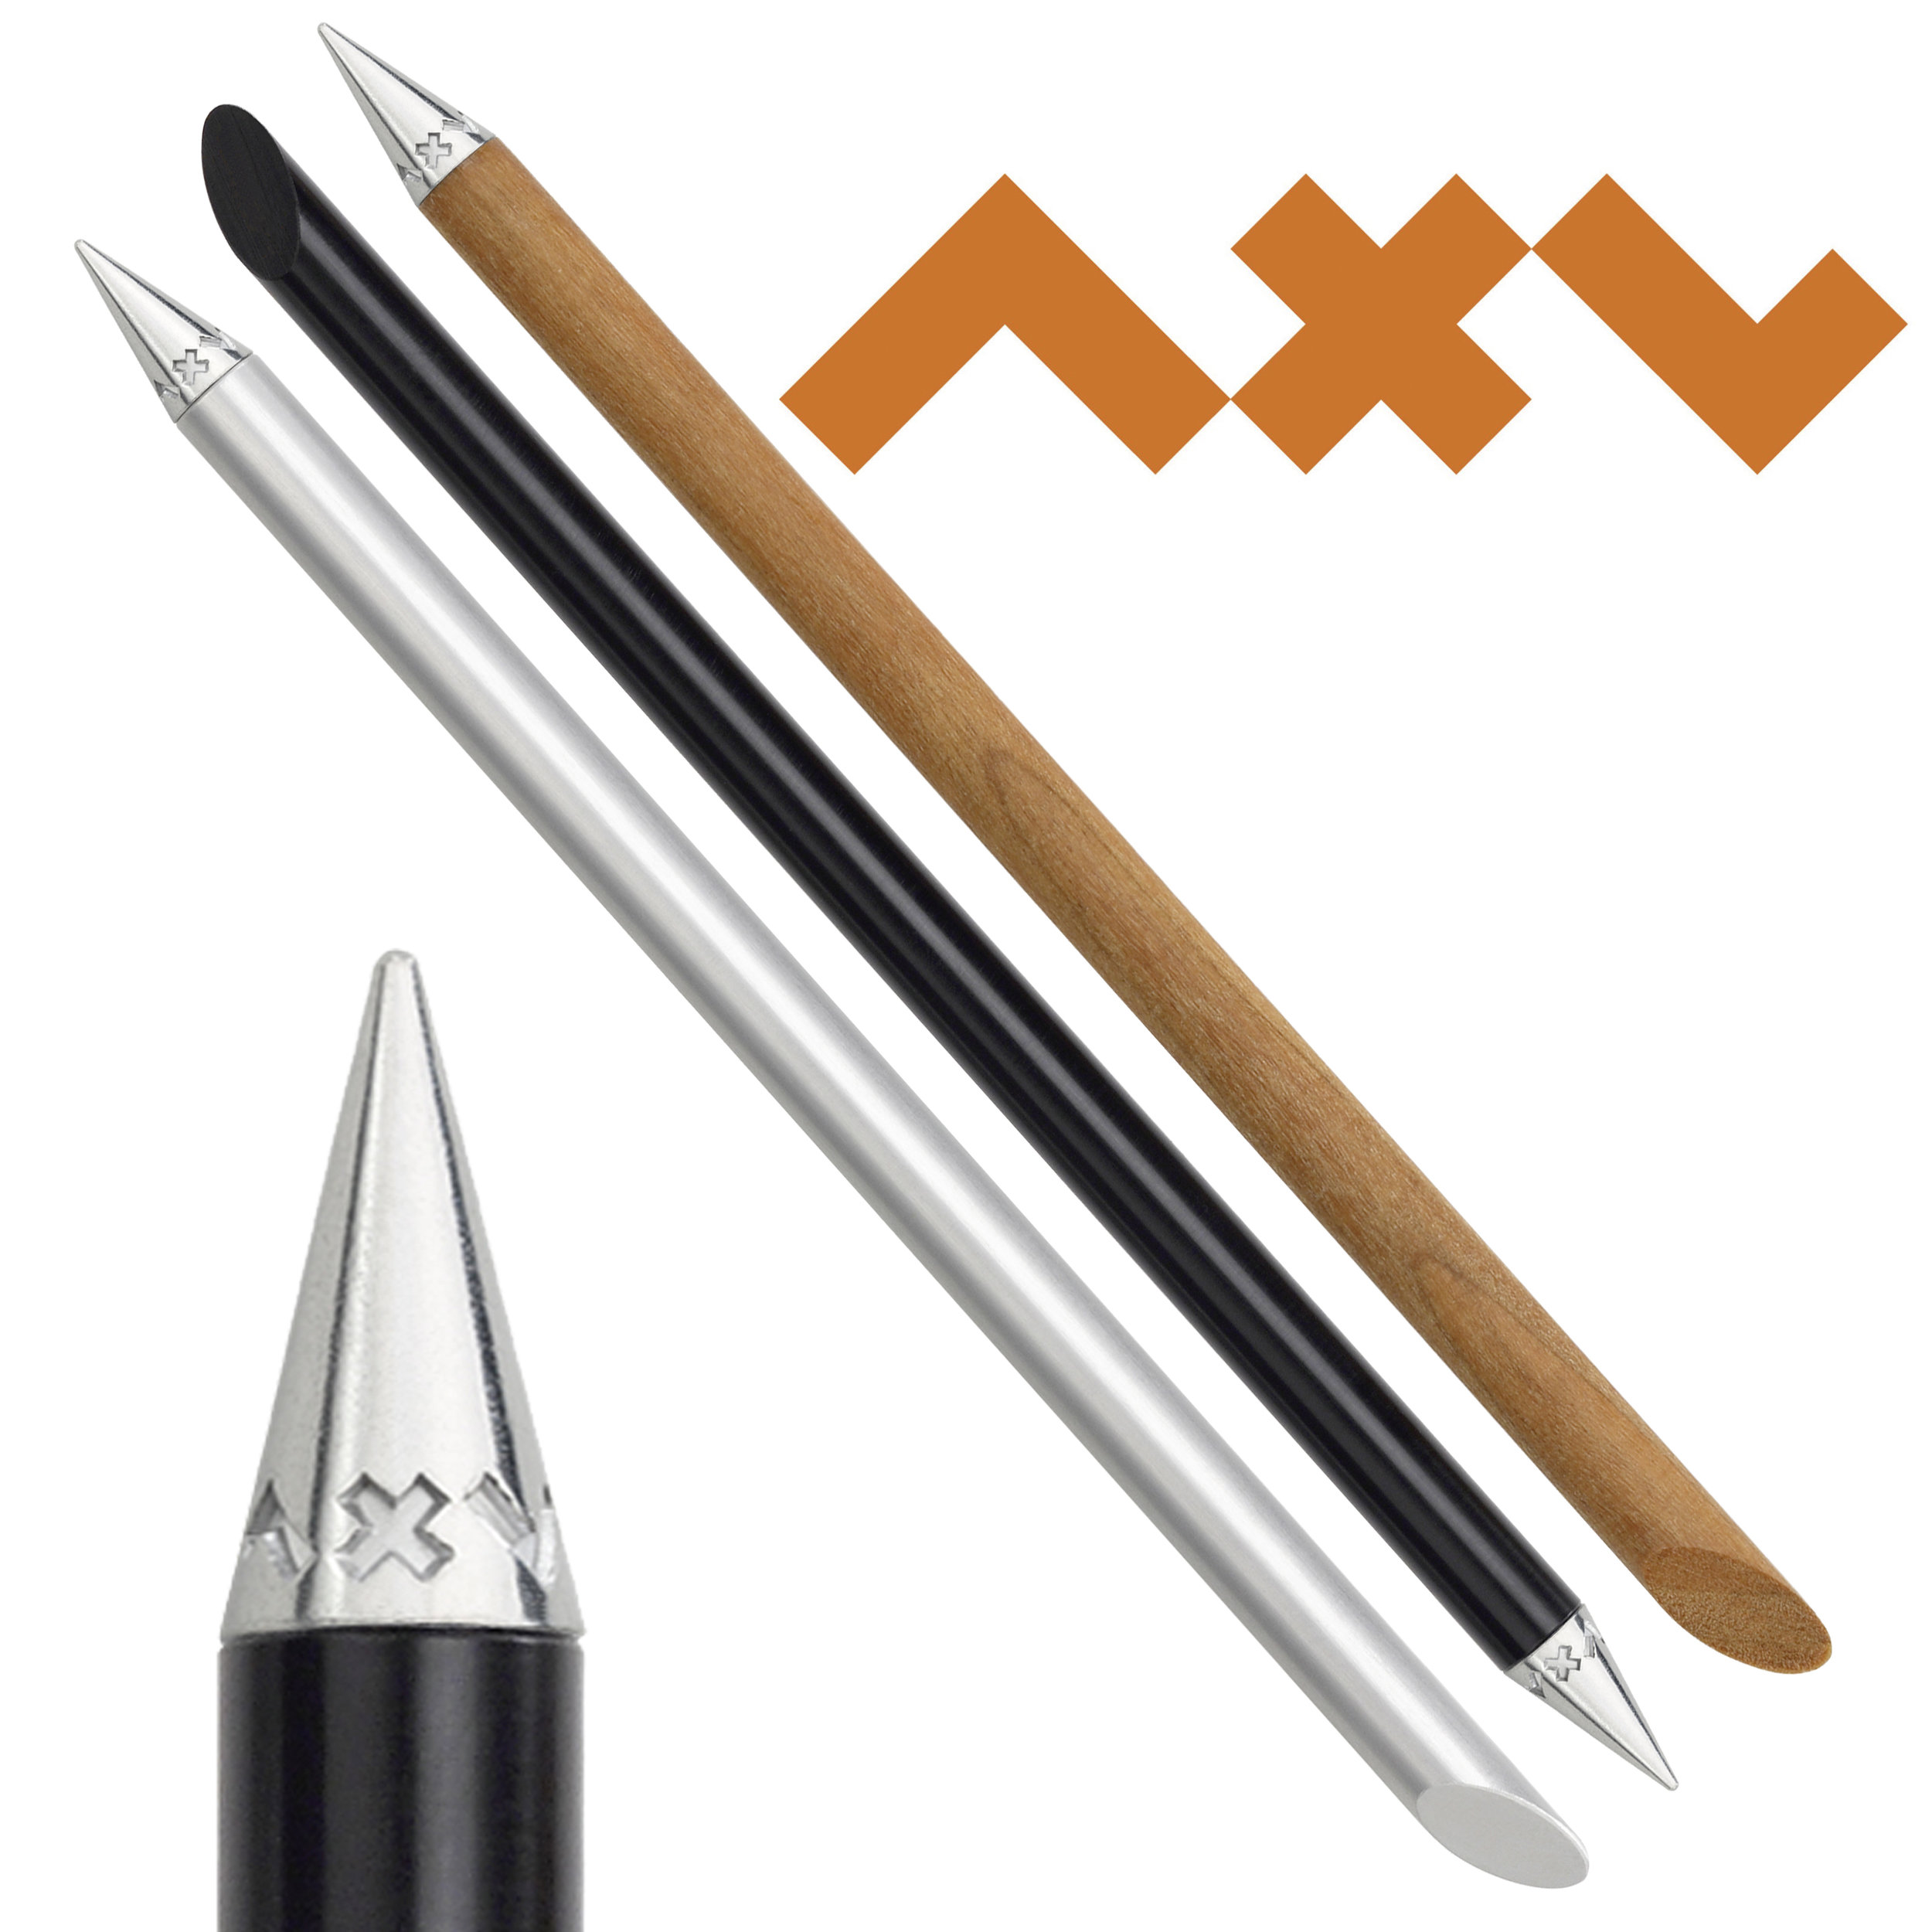 The Original Beta Inkless Pens. - Body comes in Silver or Black Aluminum or Cherry Wood. MSRP - $30.95